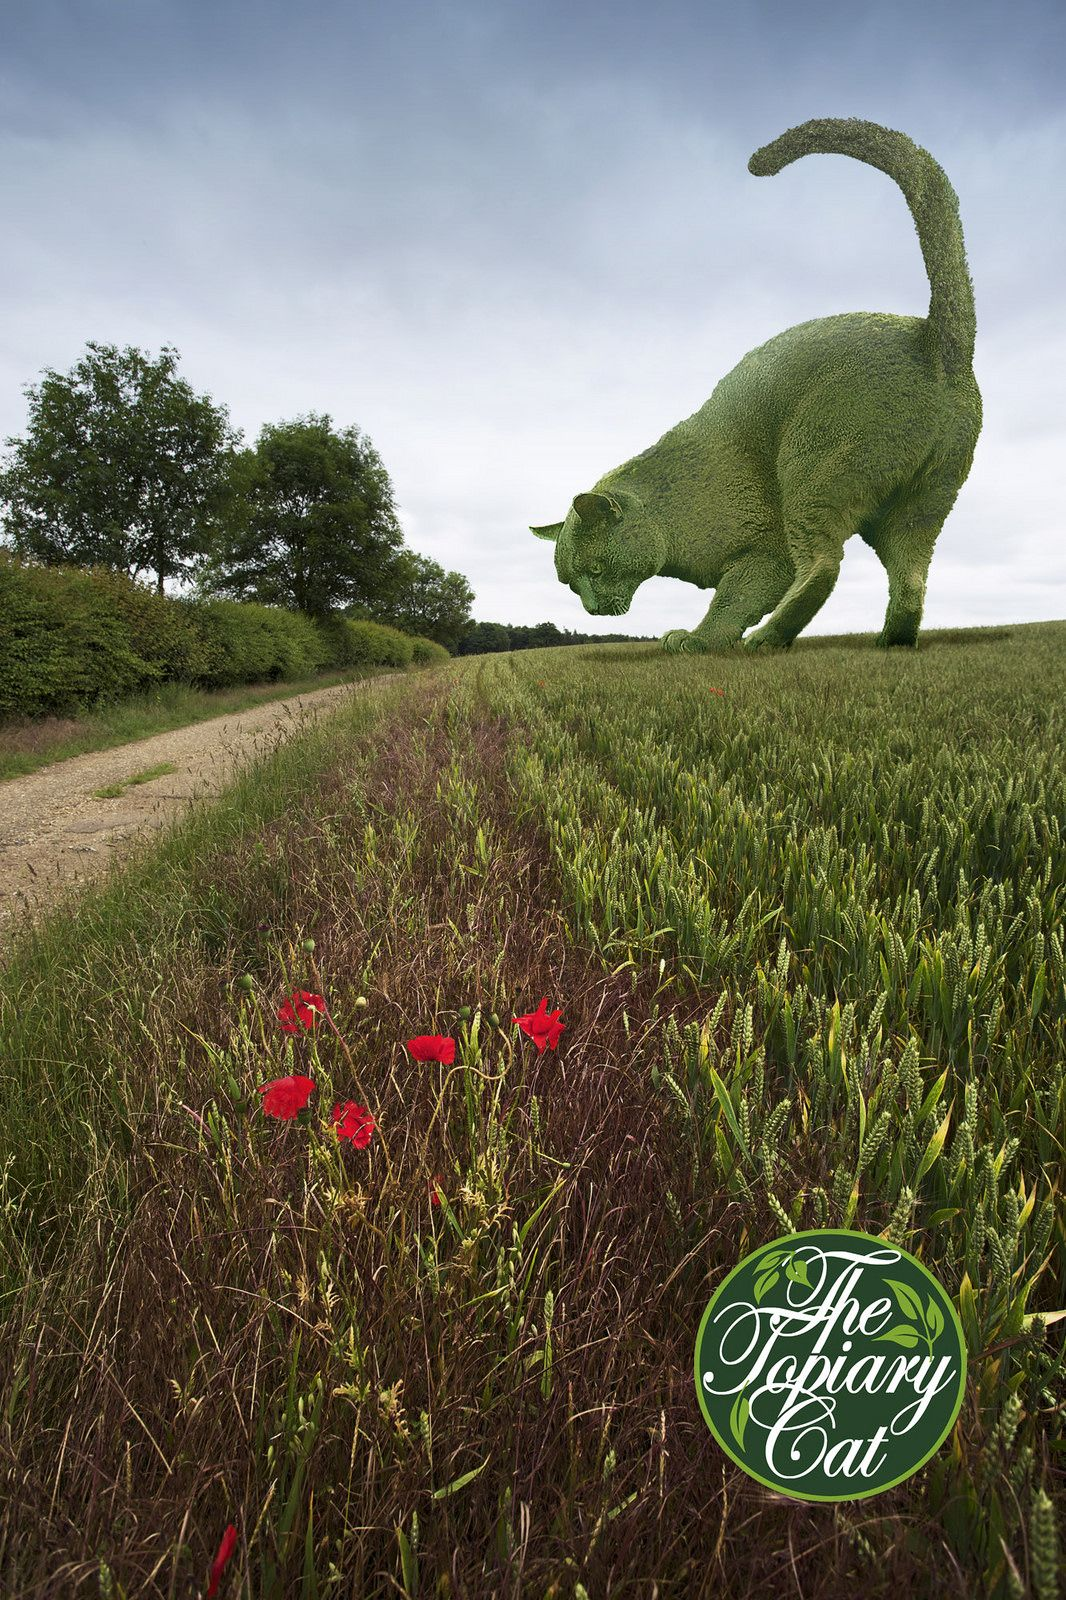 The Topiary Cat on the move | Topiary, Cat and Gardens